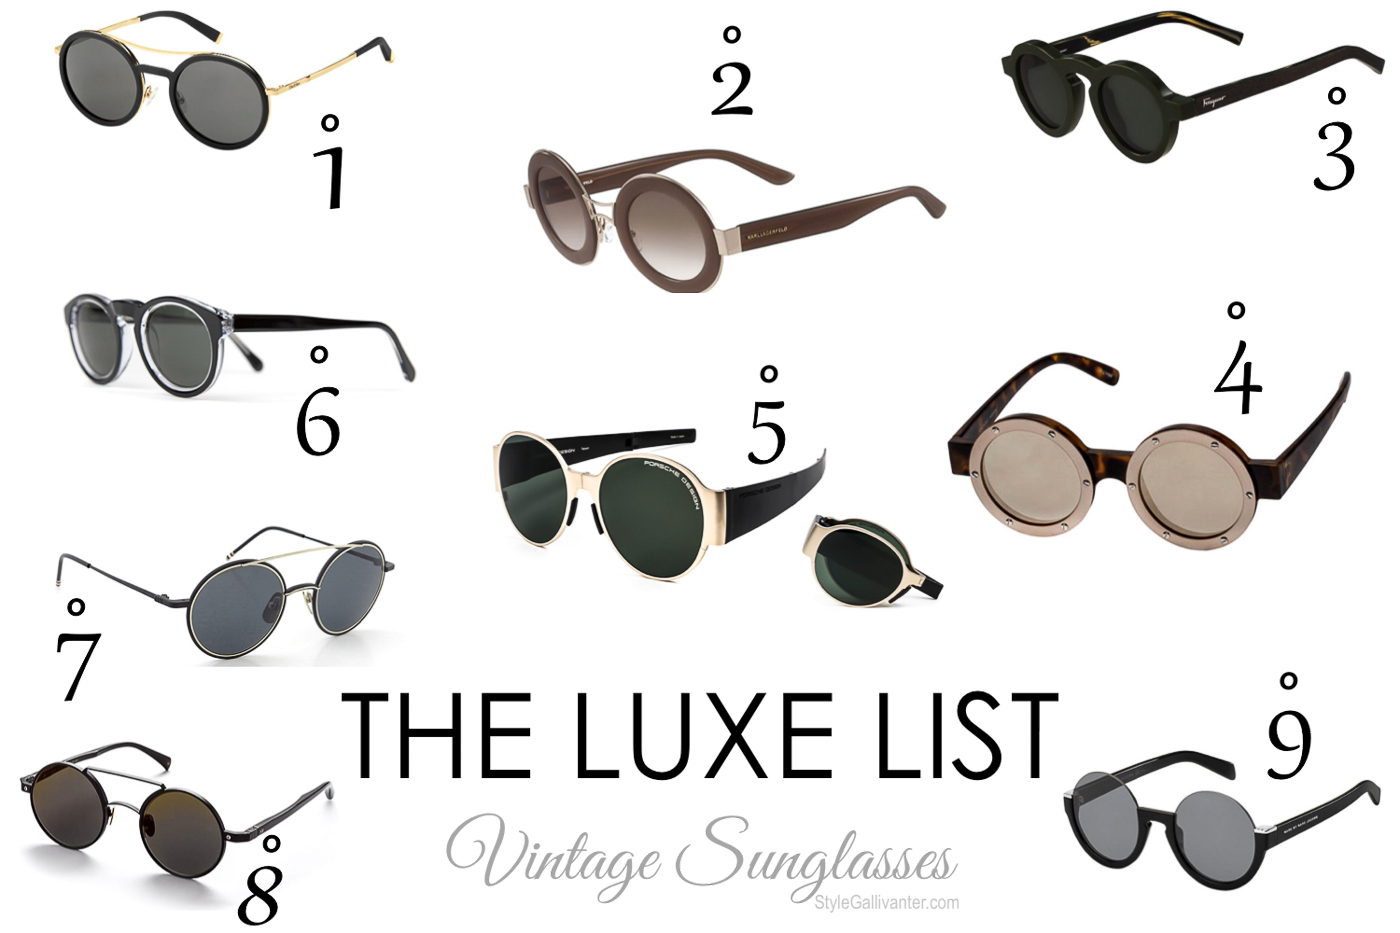 sunglass-trends-2016_vintage-round-sunglasses-2016_aviators_best-retro-glasses-2016_designer-sunglasses-2016_best-fashion-blogs-uk-2016_top-fashion-bloggers-australia-2016